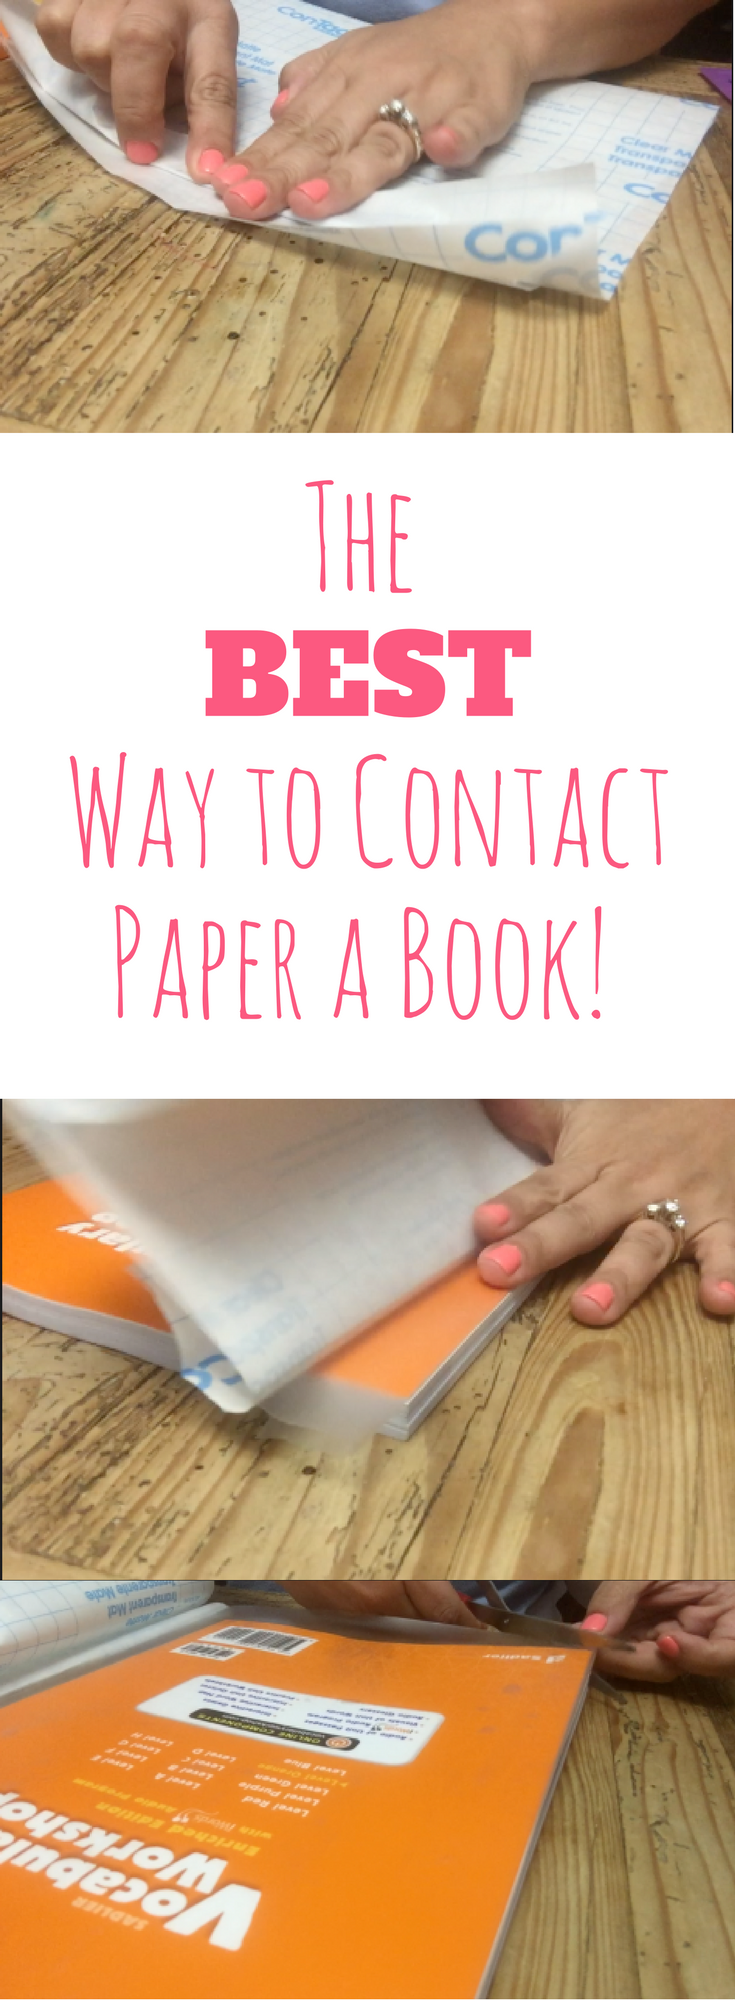 How To Contact Paper Books Using An Easy Method